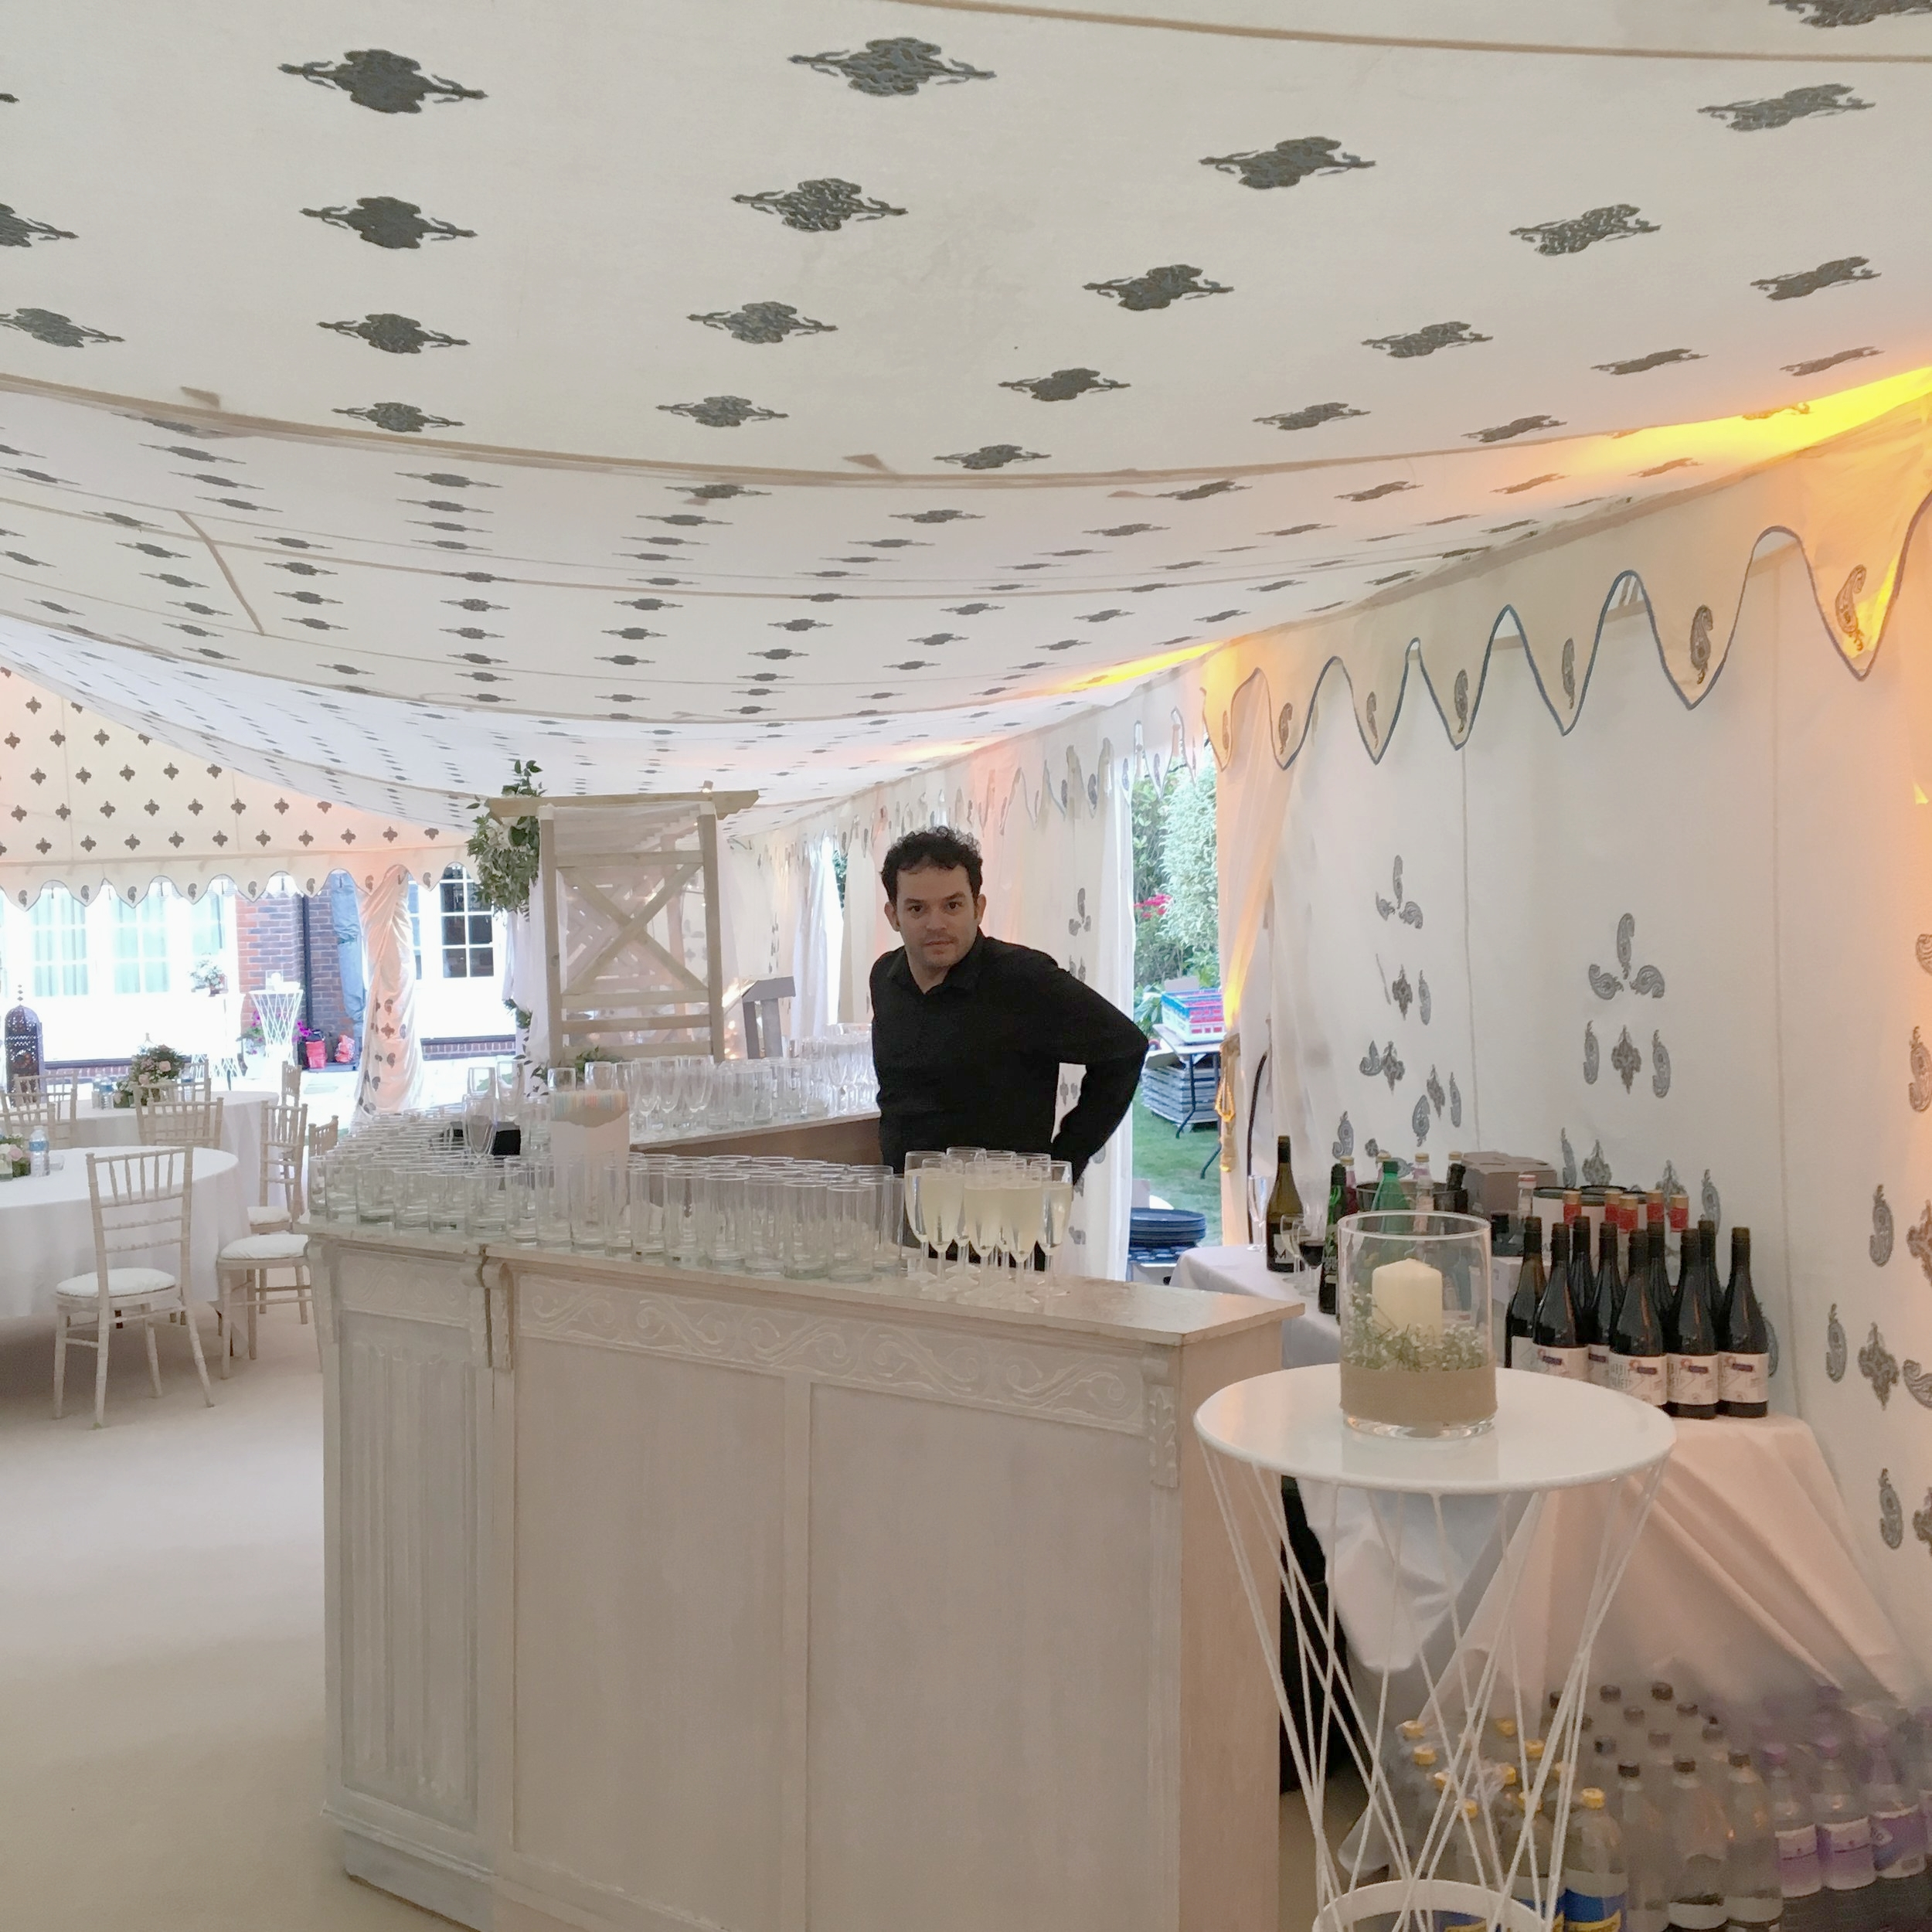 Remy is ready to serve at this massive wedding